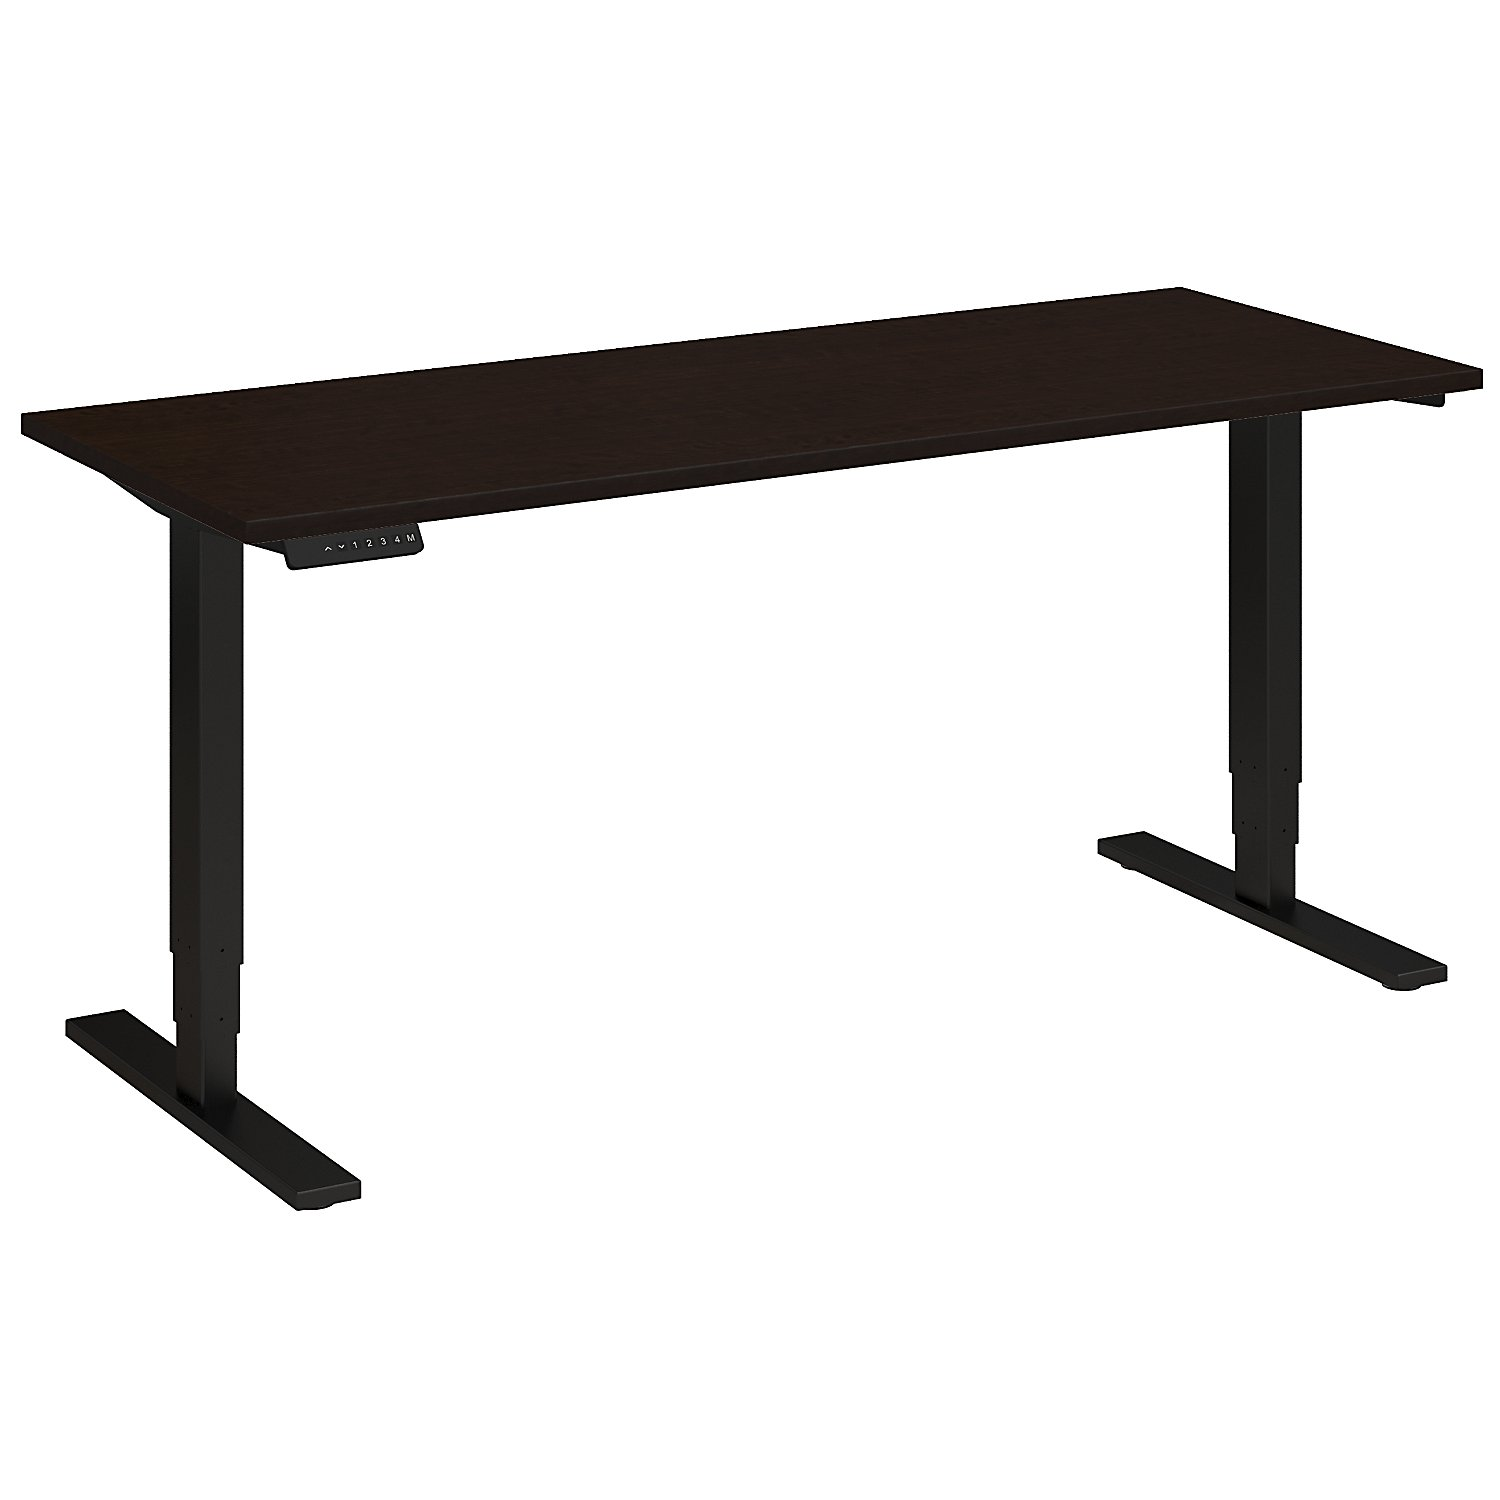 Sit Stand Desks - #HAT6024